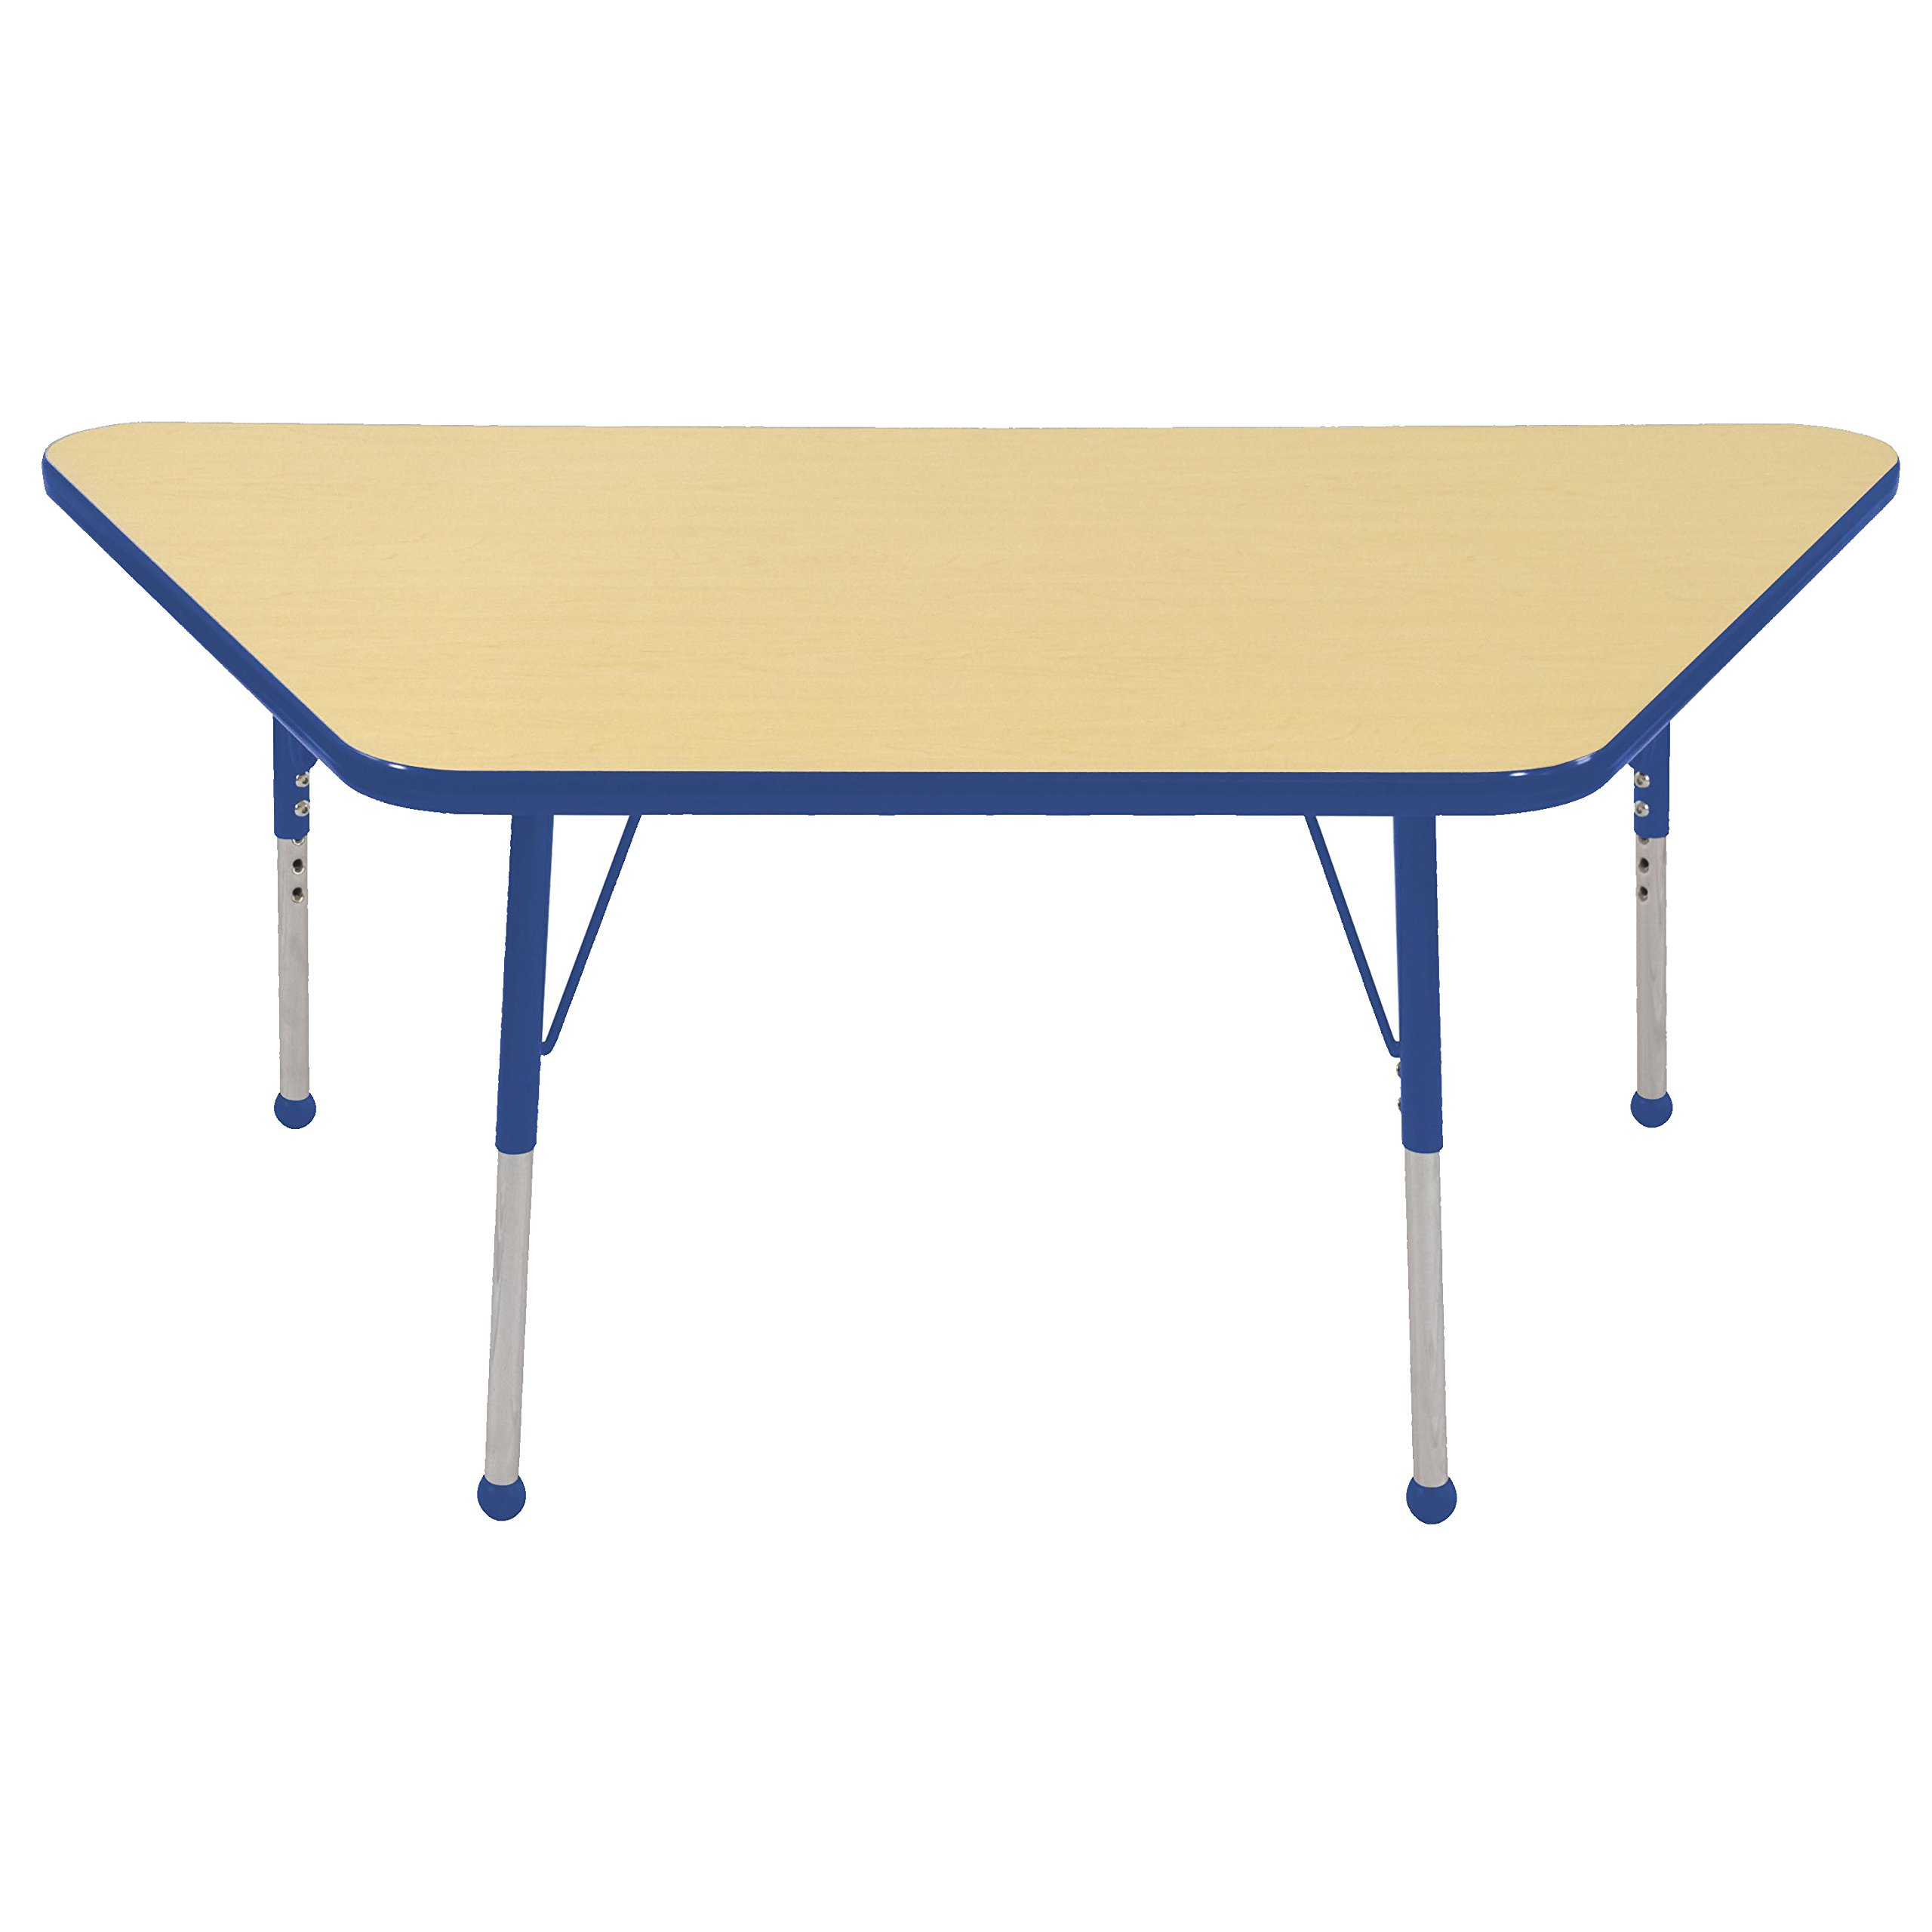 ECR4Kids Mesa Thermo-fused 30'' x 60'' Trapezoid School Activity Table, Toddler Legs w/ Ball Glides, Adjustable Height 15-23 inch (Maple/Blue)